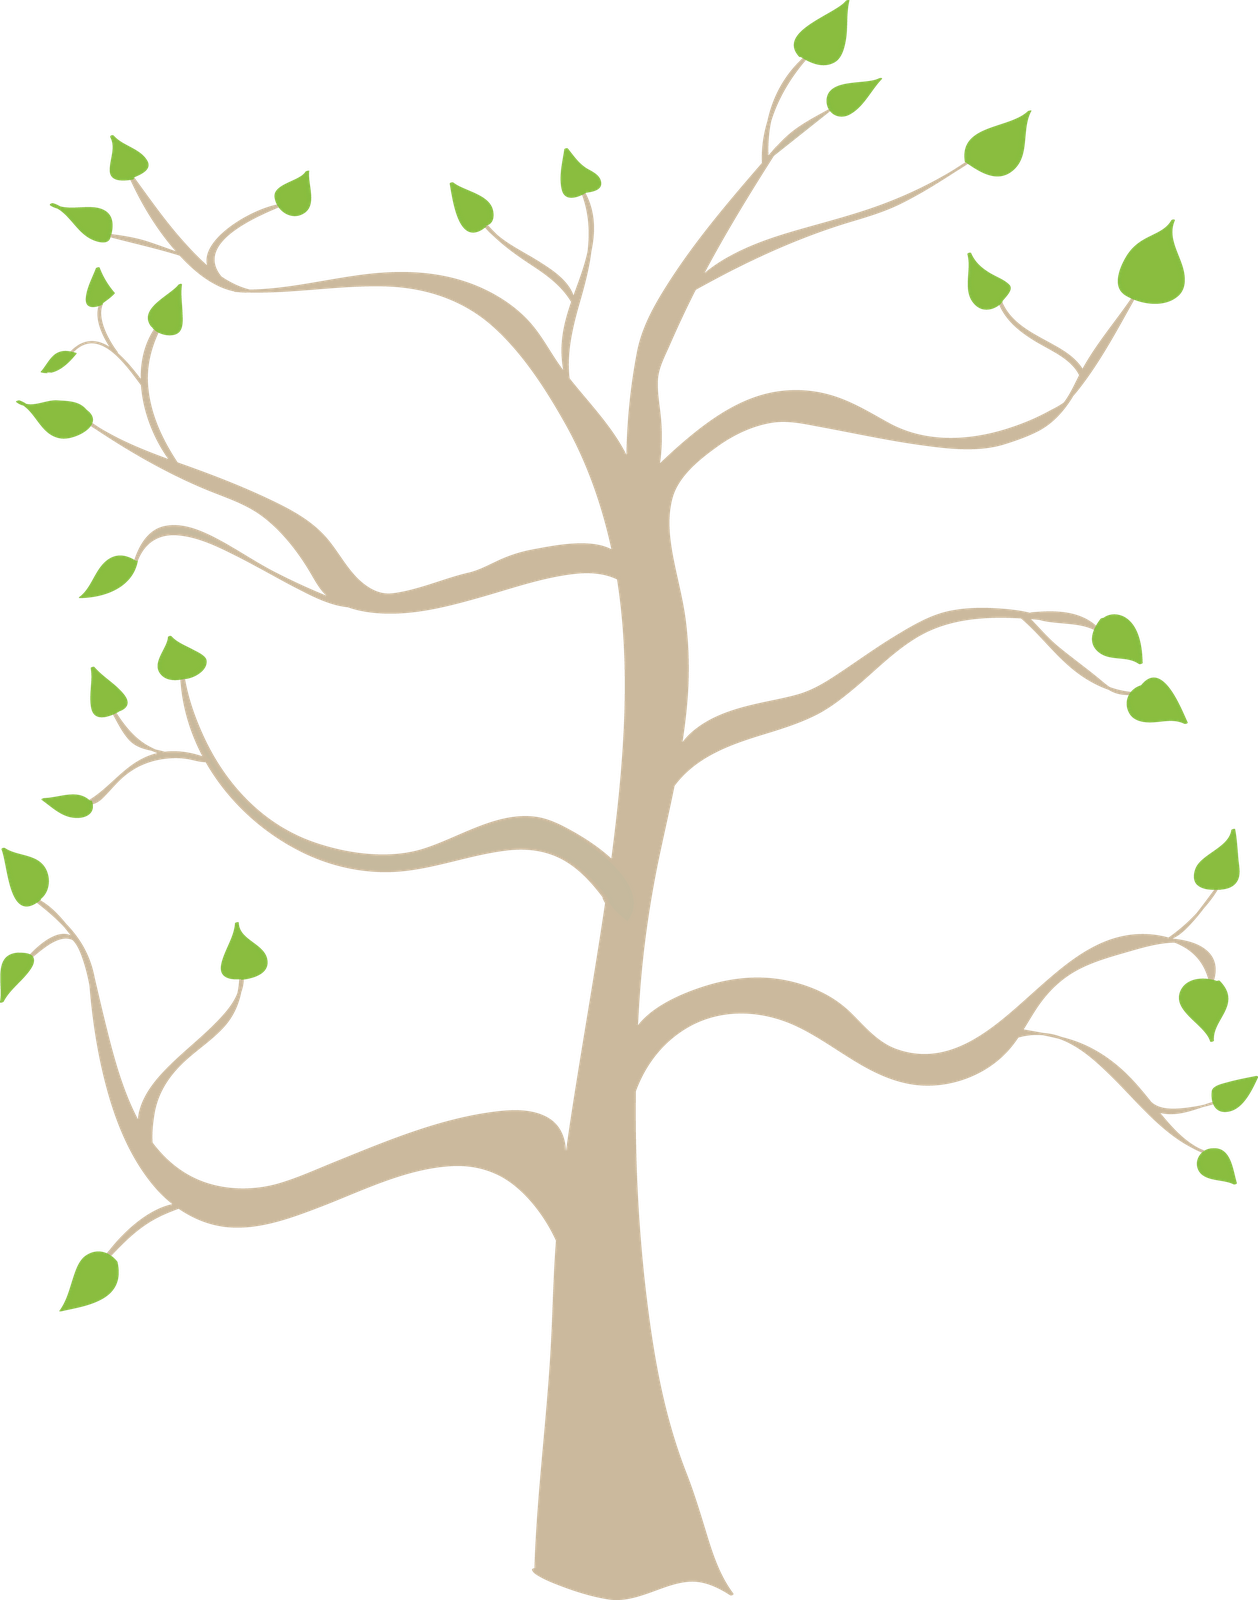 Tree switch clipart graphic free download Family tree clip art related keywords | Clip Art | Pinterest ... graphic free download